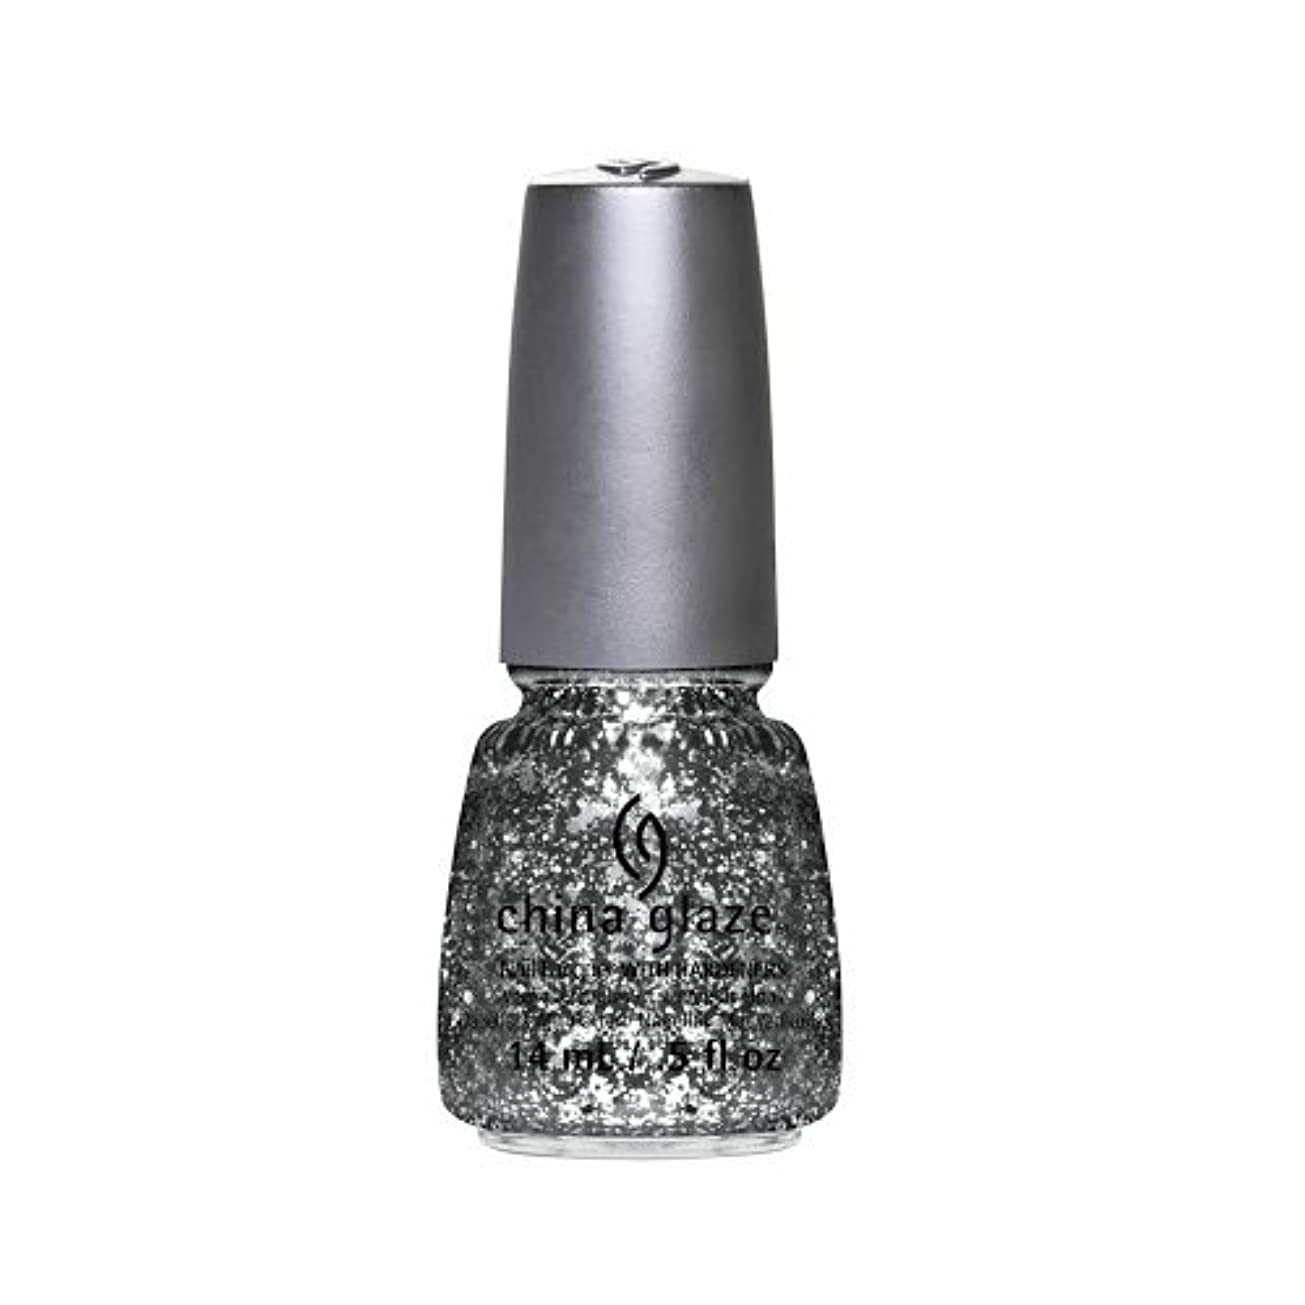 ストライド敷居快適(6 Pack) CHINA GLAZE Nail Lacquer - Glitz Bitz ?n Pieces Collection - Gltz'n Pieces (並行輸入品)